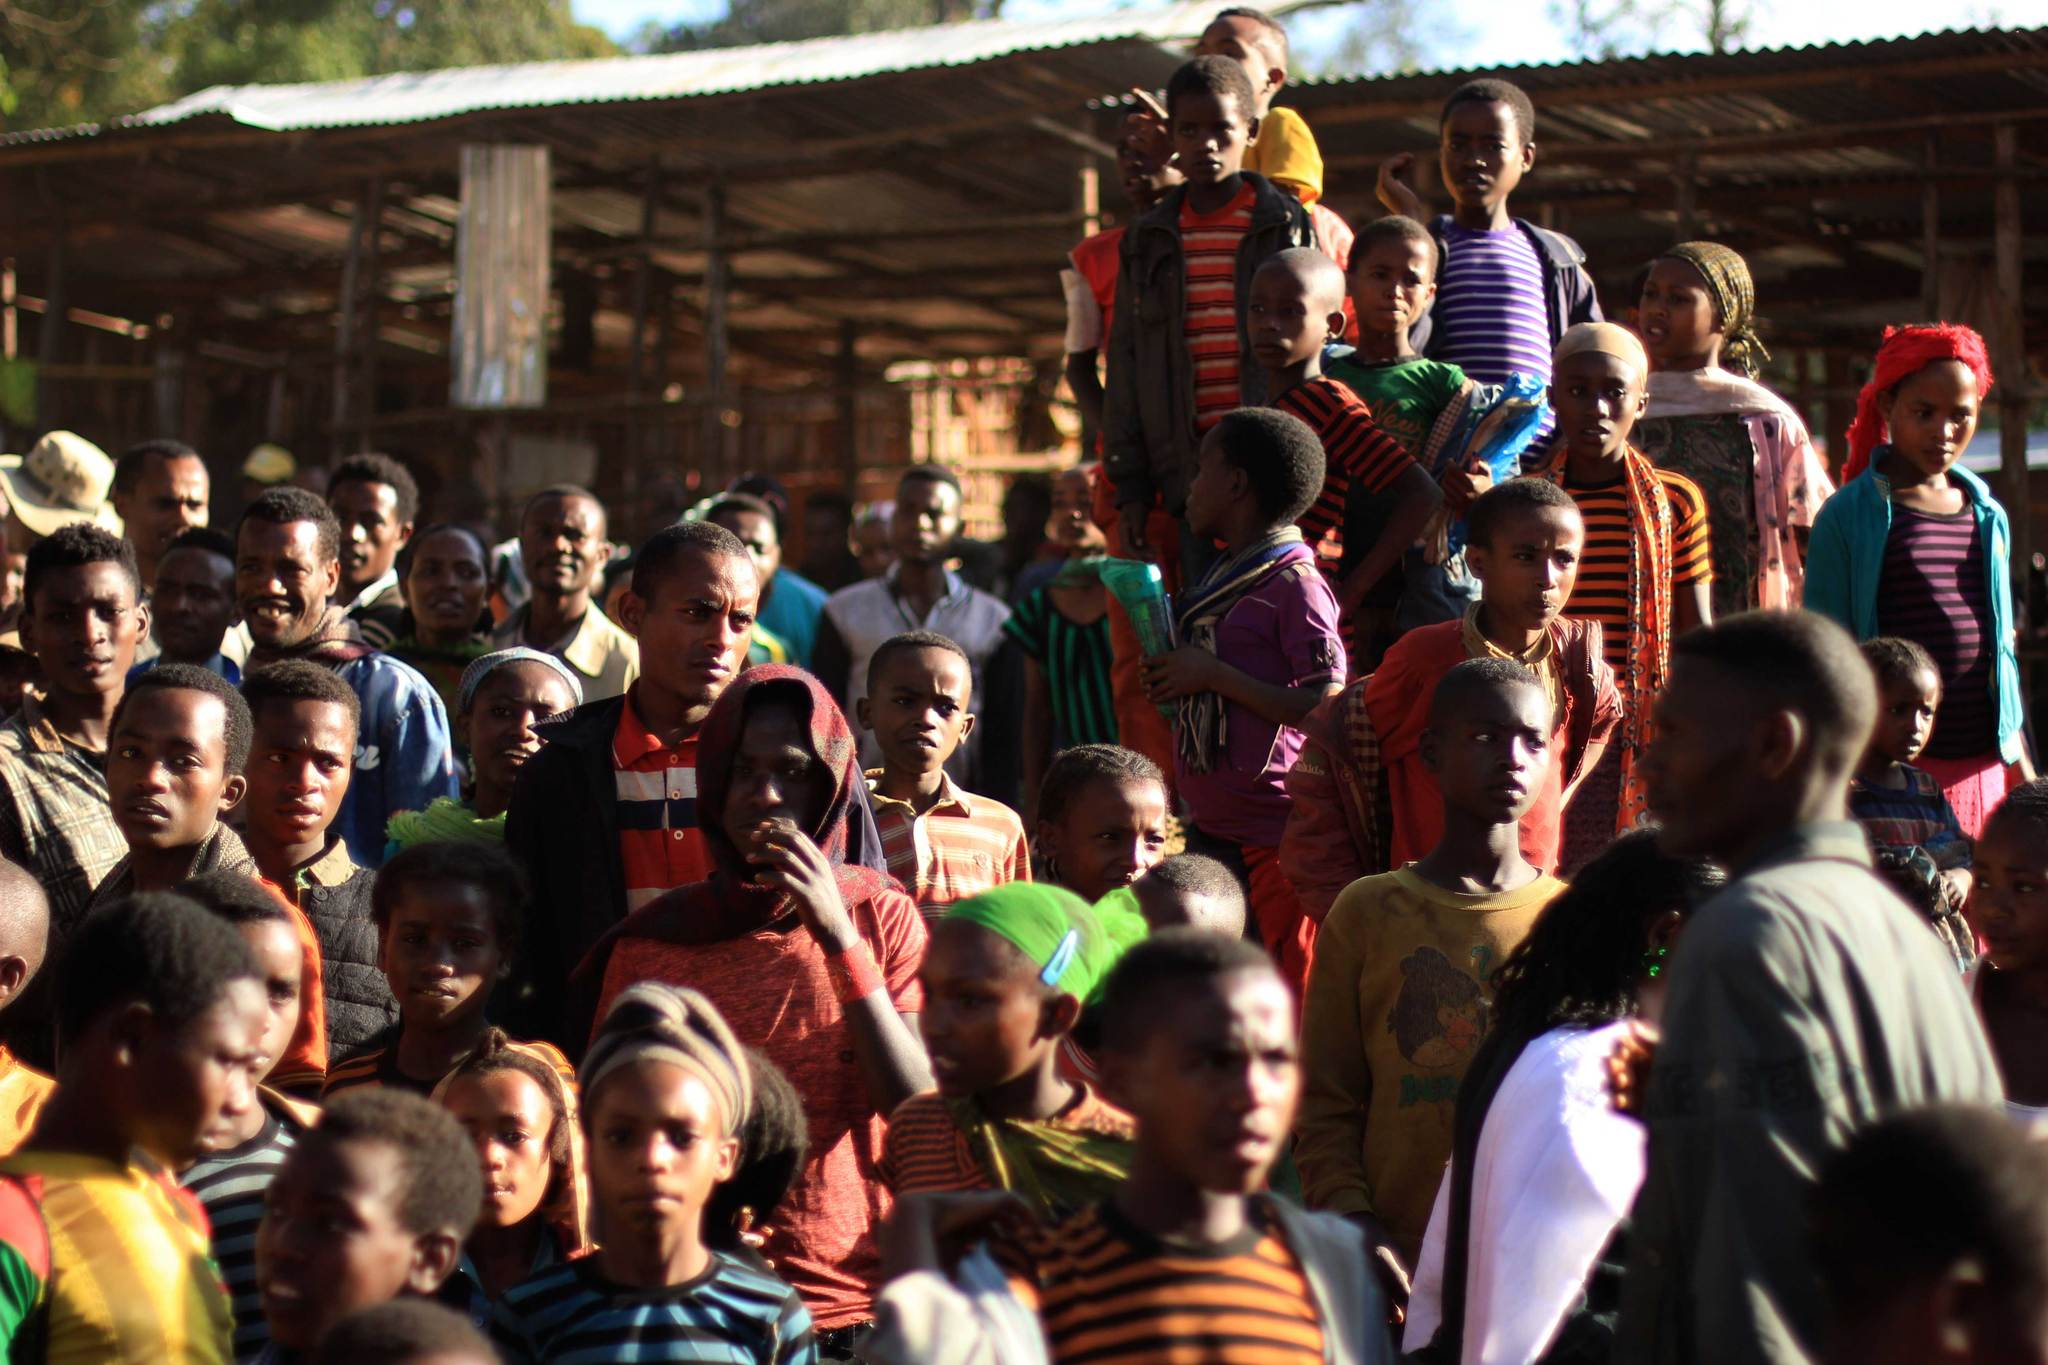 Crowds in the streets of Ethiopia.